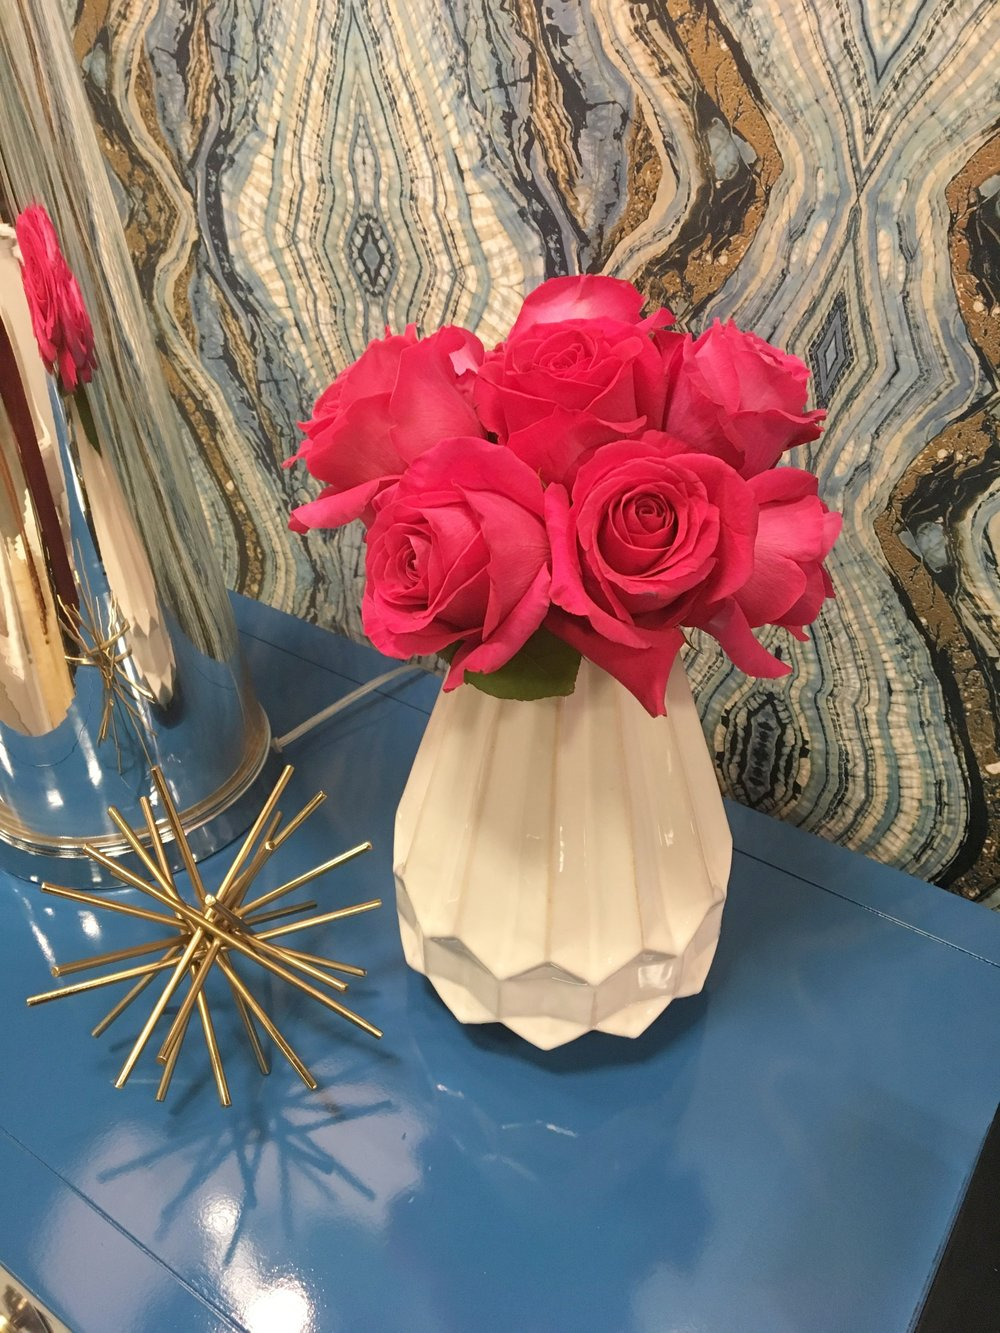 FINDS specializes in creating a high lacquer on vintage pieces, and they were so gracious to create this one for us in Sherwin William's Adriatic Blue